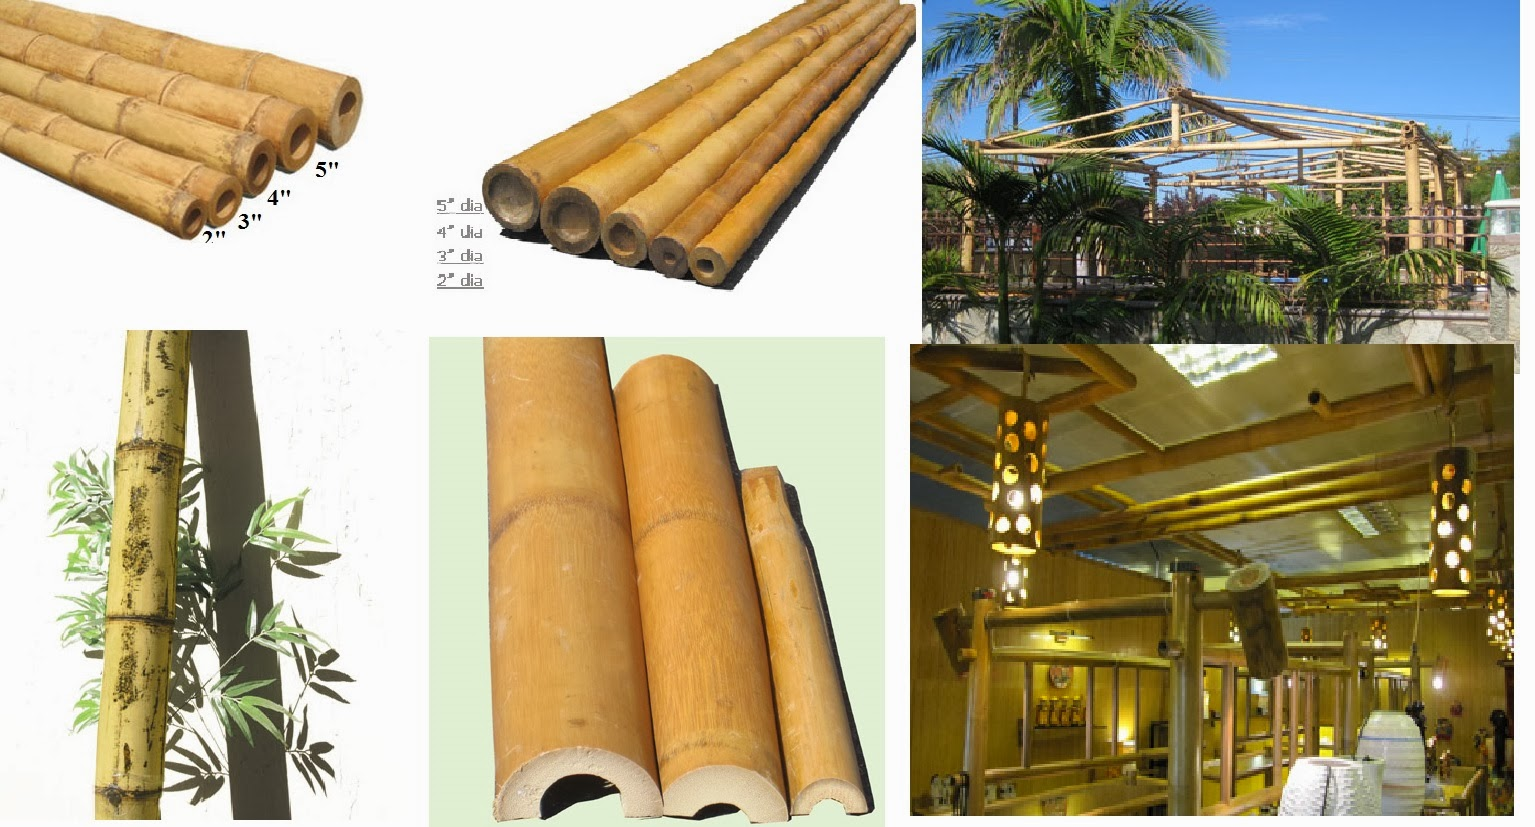 Bamboo and cane supplies wholesale bamboo poles bamboo poles for sale sell bamboo pole - Bamboo bar design ideas ...